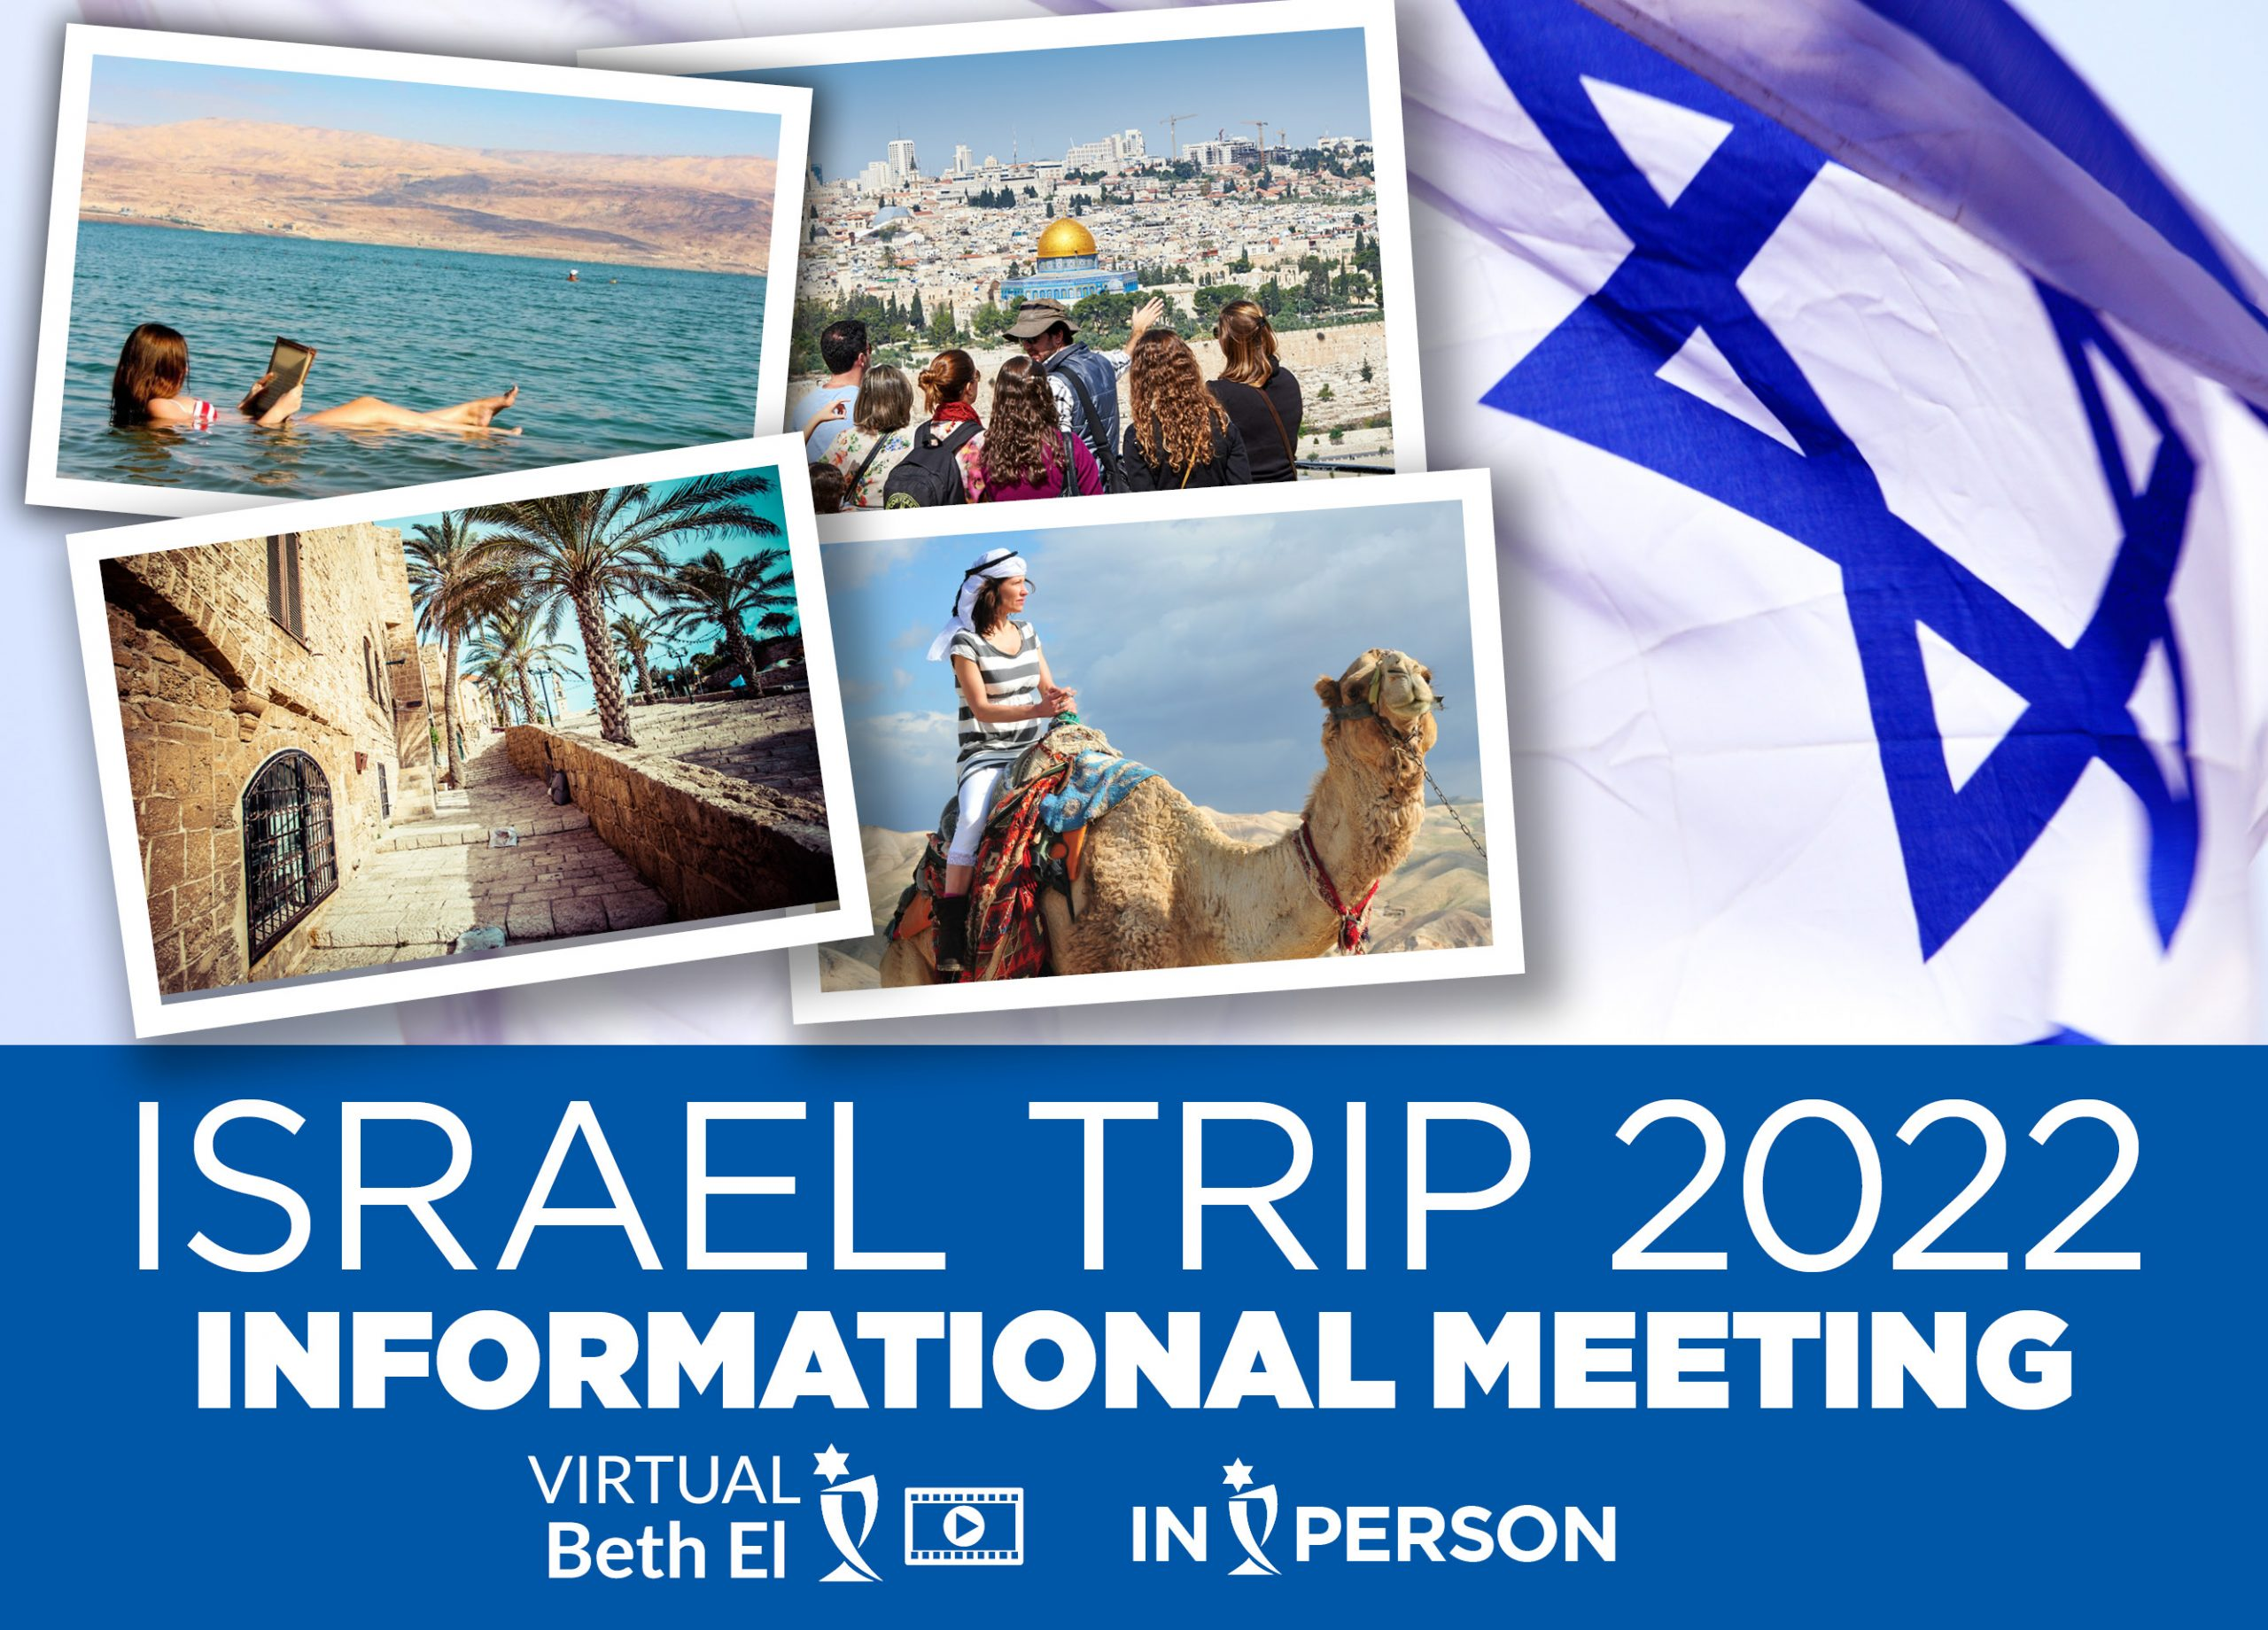 Israel Trip 2022 Informational Meeting event graphic for Temple Beth El of Boca Raton